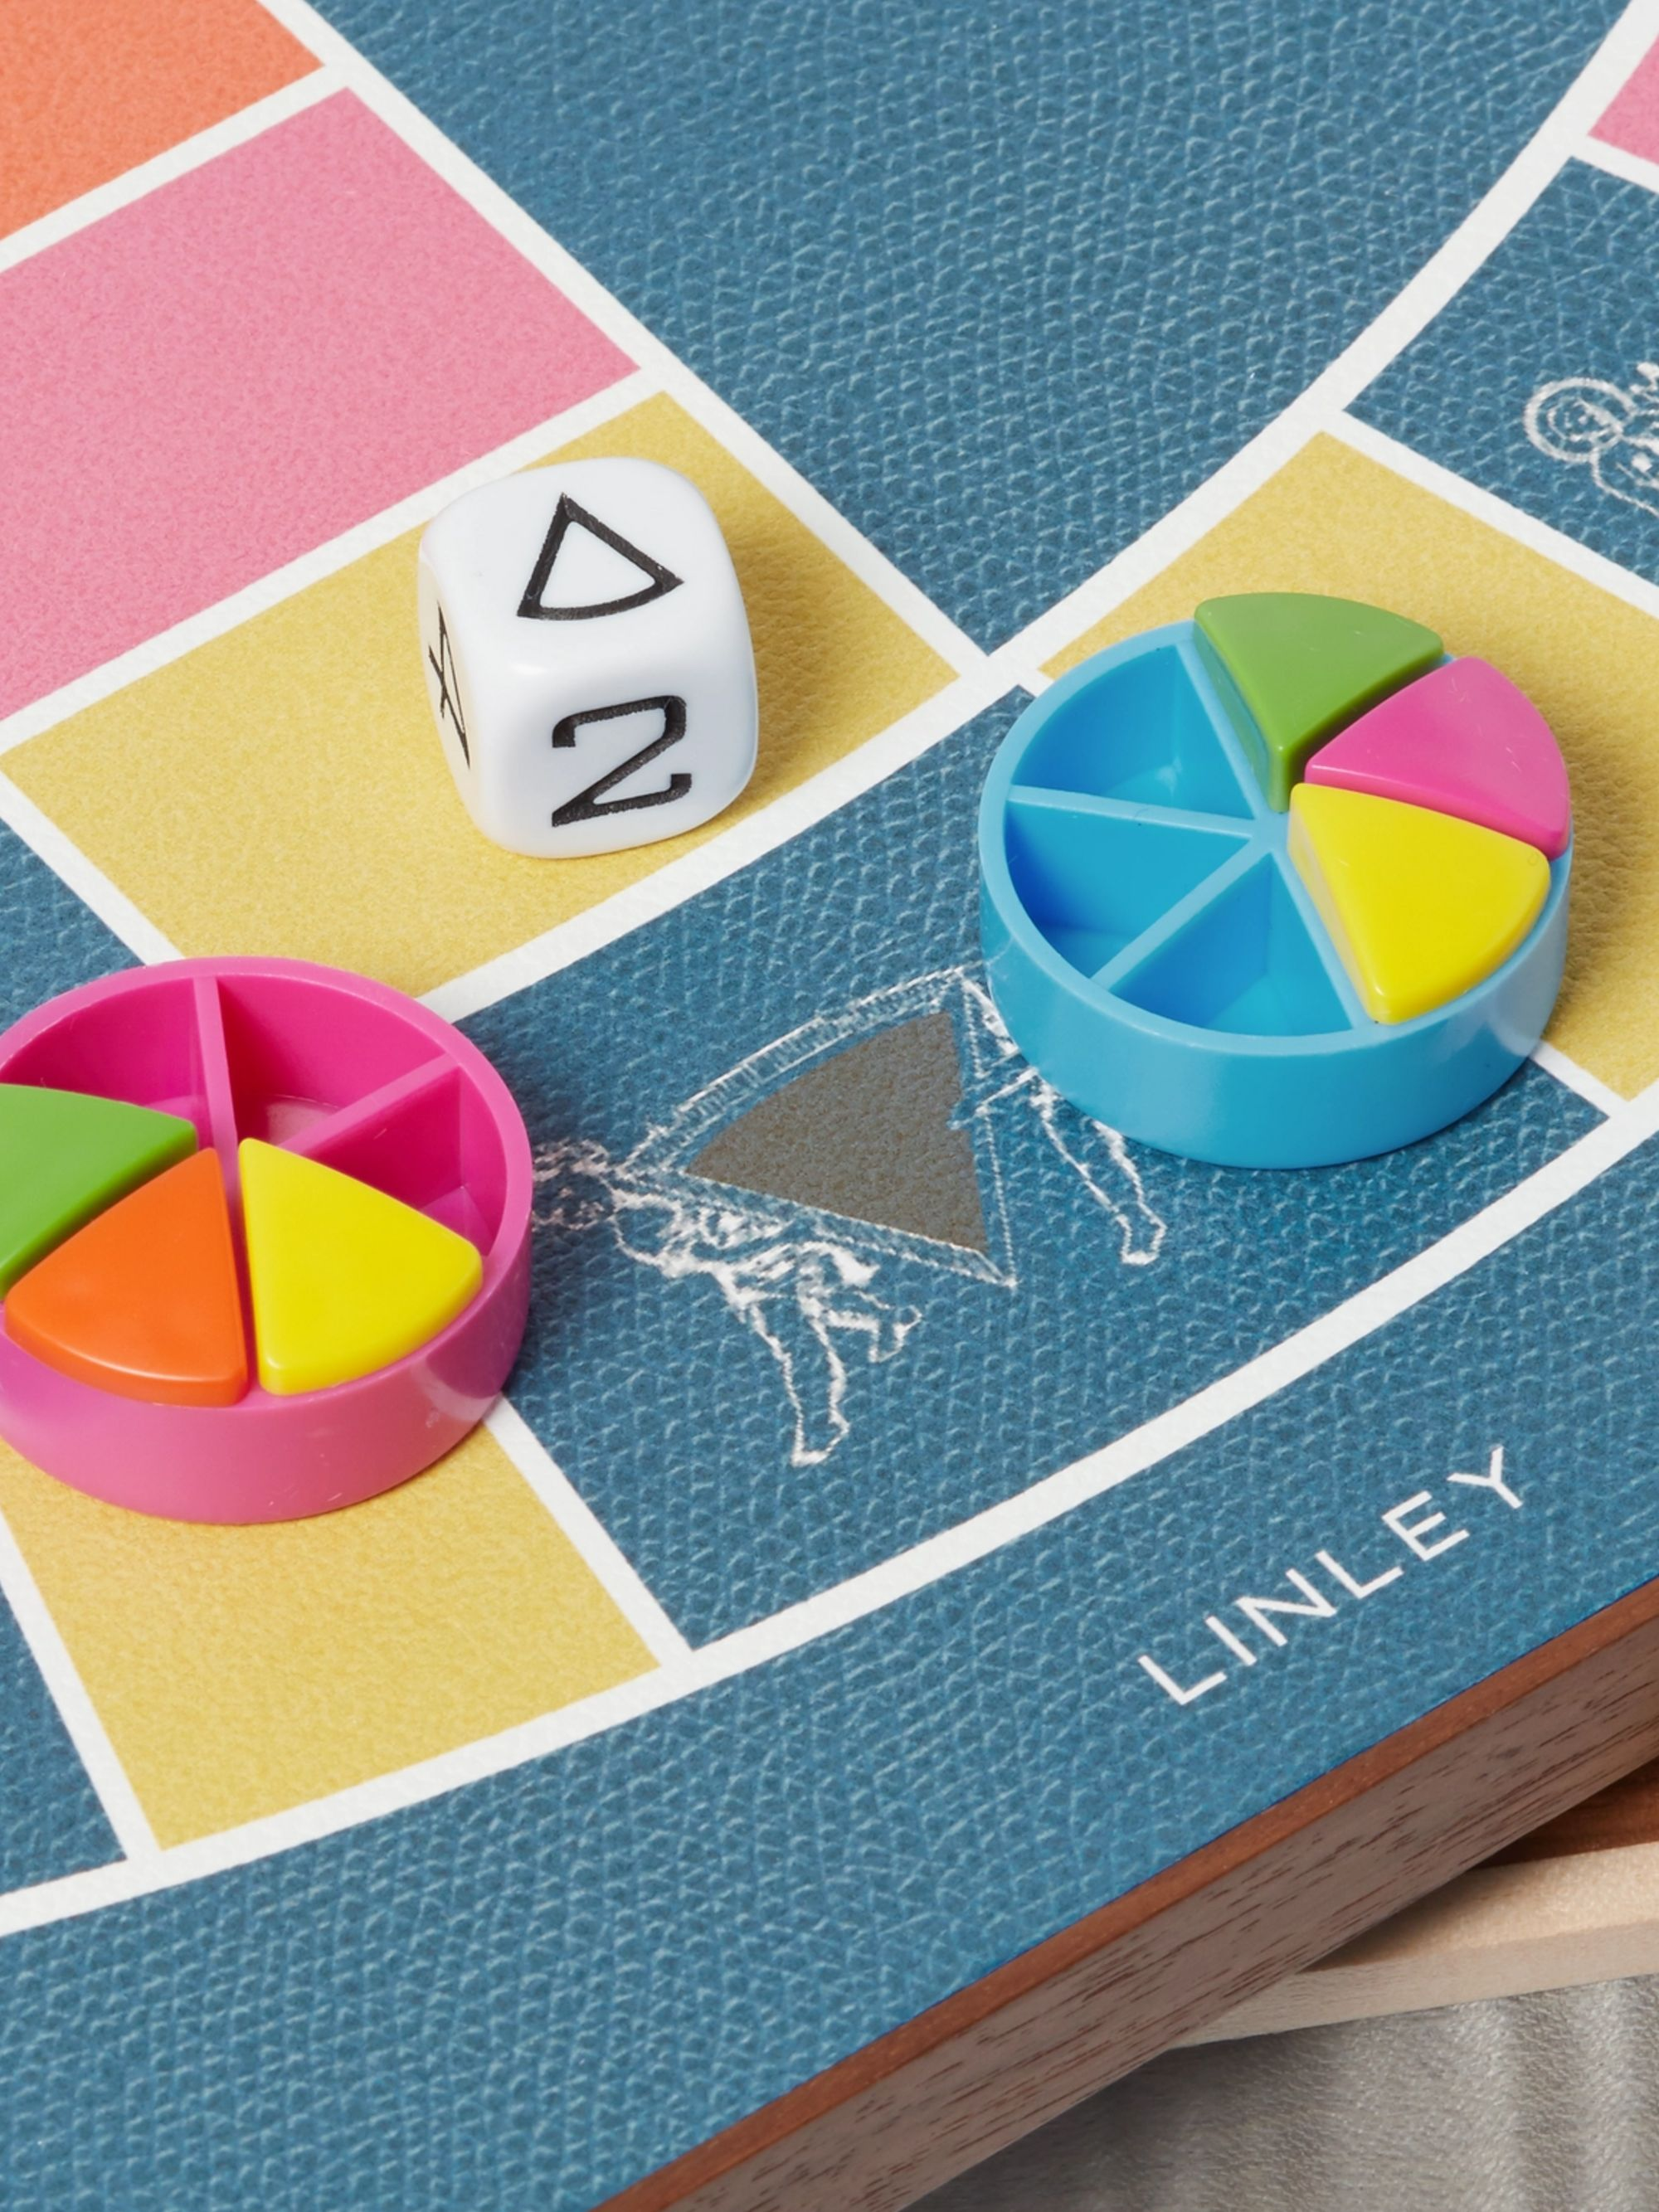 Linley Leather and Wood Stacking Games Compendium - Scrabble and Trivial Pursuit